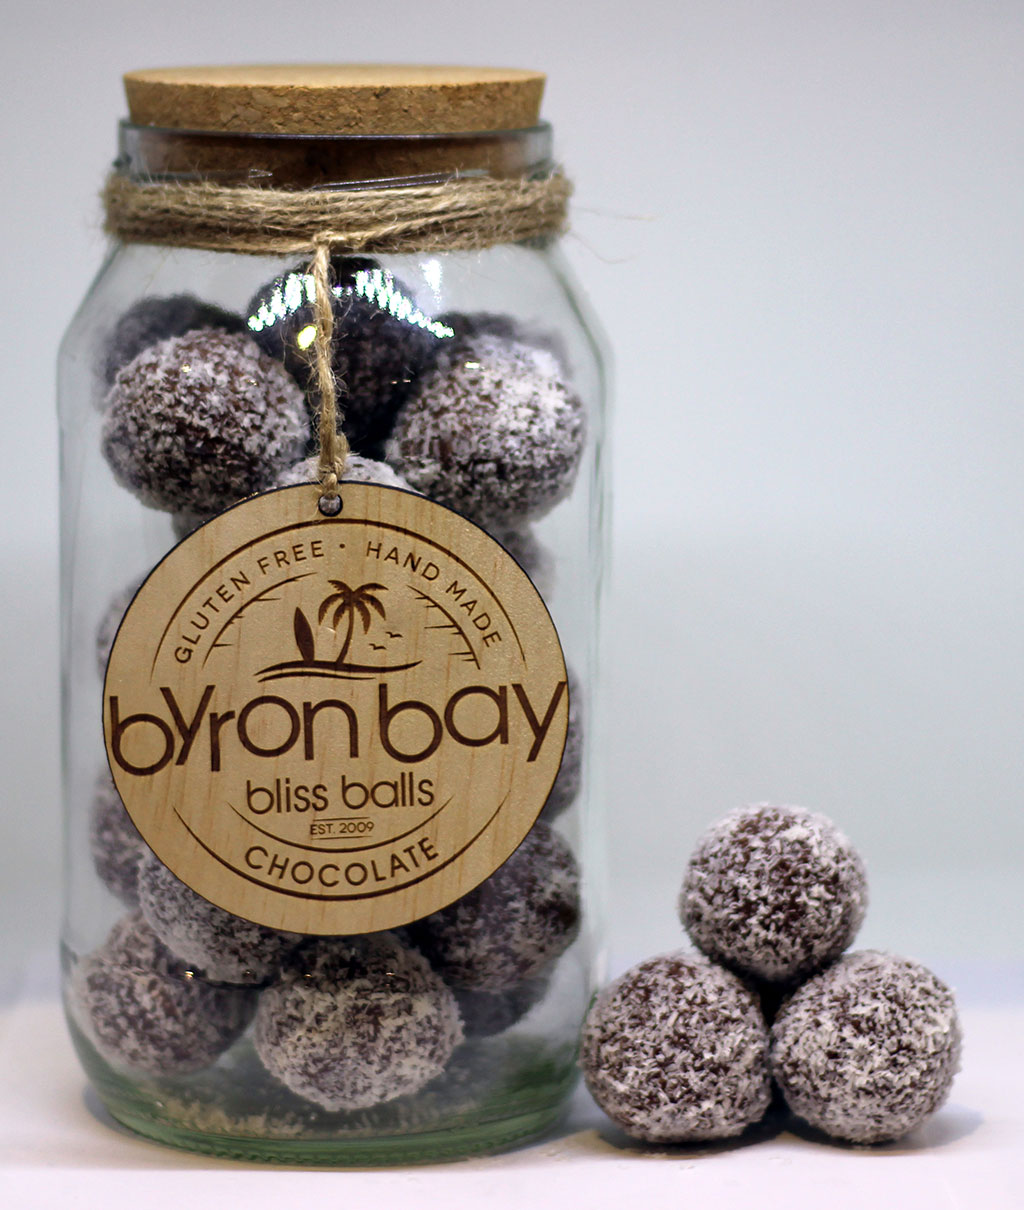 chocolate bliss balls from byron bay